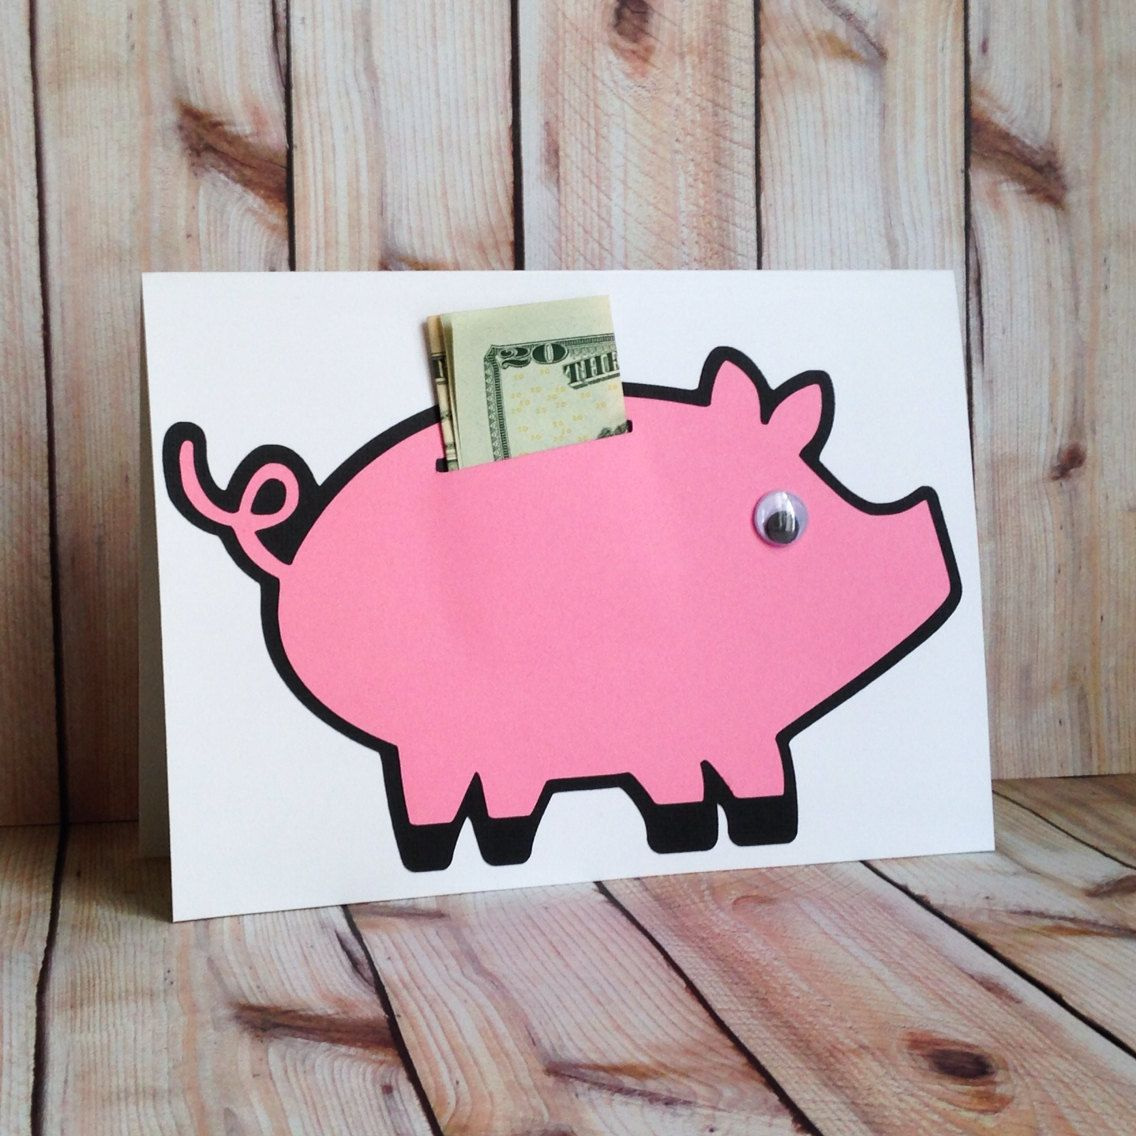 10 clever and unique birthday card ideas | gift card holders and